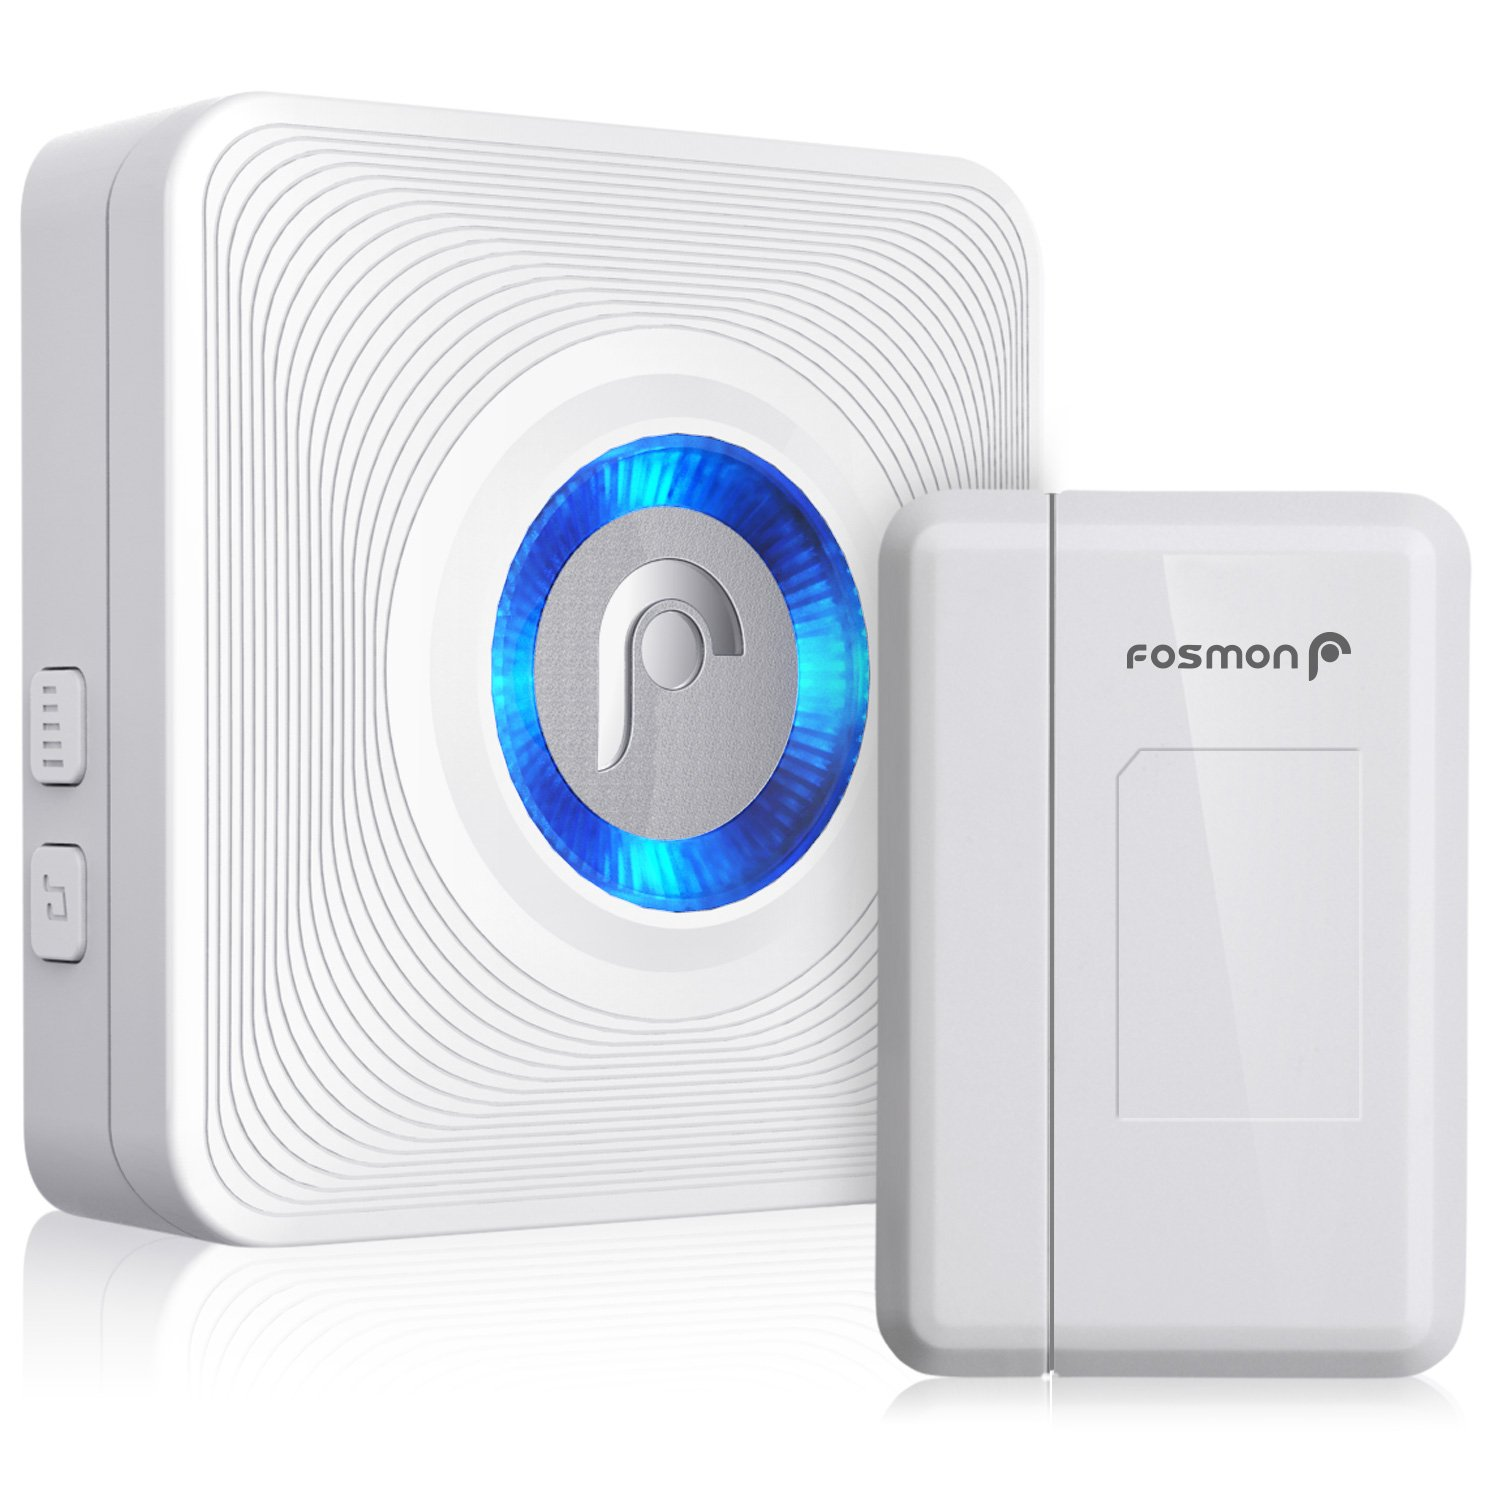 Fosmon WaveLink 51004HOM Wireless Door Open Chime (120M/400FT | 52 Tunes | 4 Volume Levels | LED Indicators) - 1 Magnetic Door Entry Alert Security Contact Sensor, 1 Wireless Doorbell Plugin Receiver